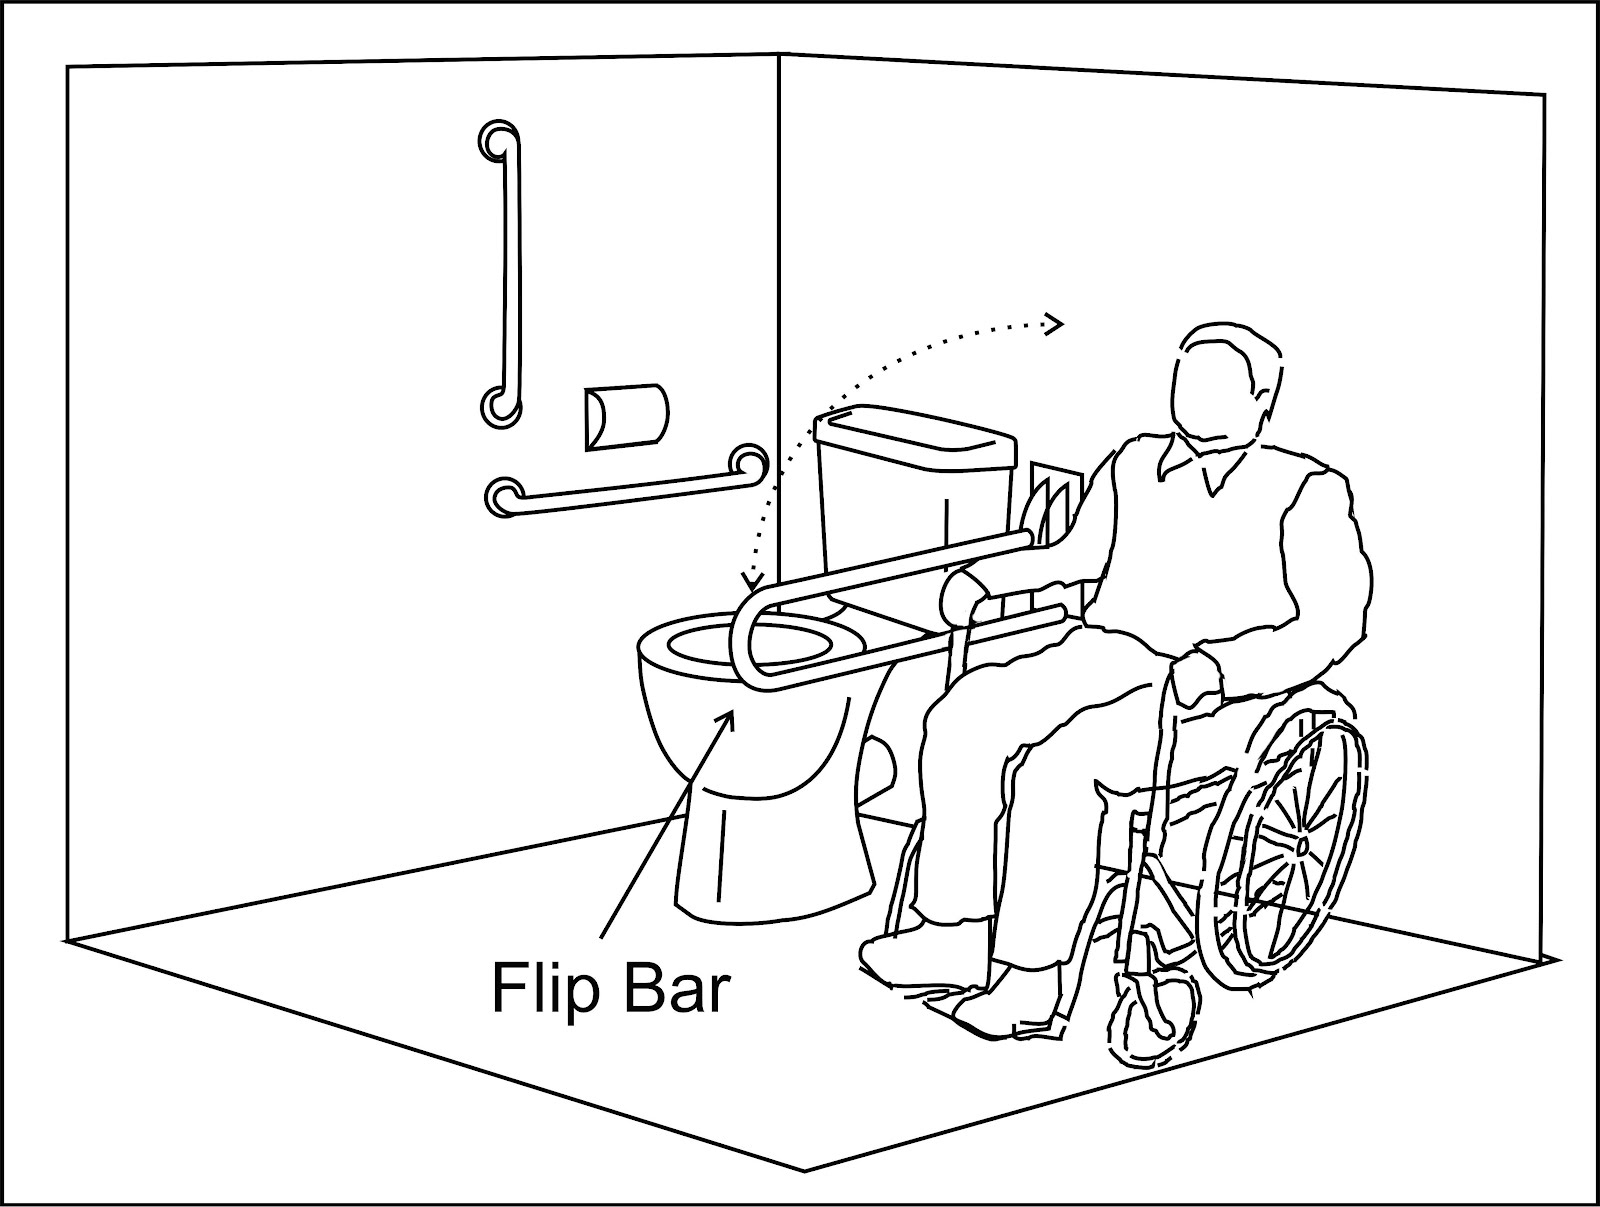 wheelchair access penang wapenang toilet wc for disabled people. Black Bedroom Furniture Sets. Home Design Ideas